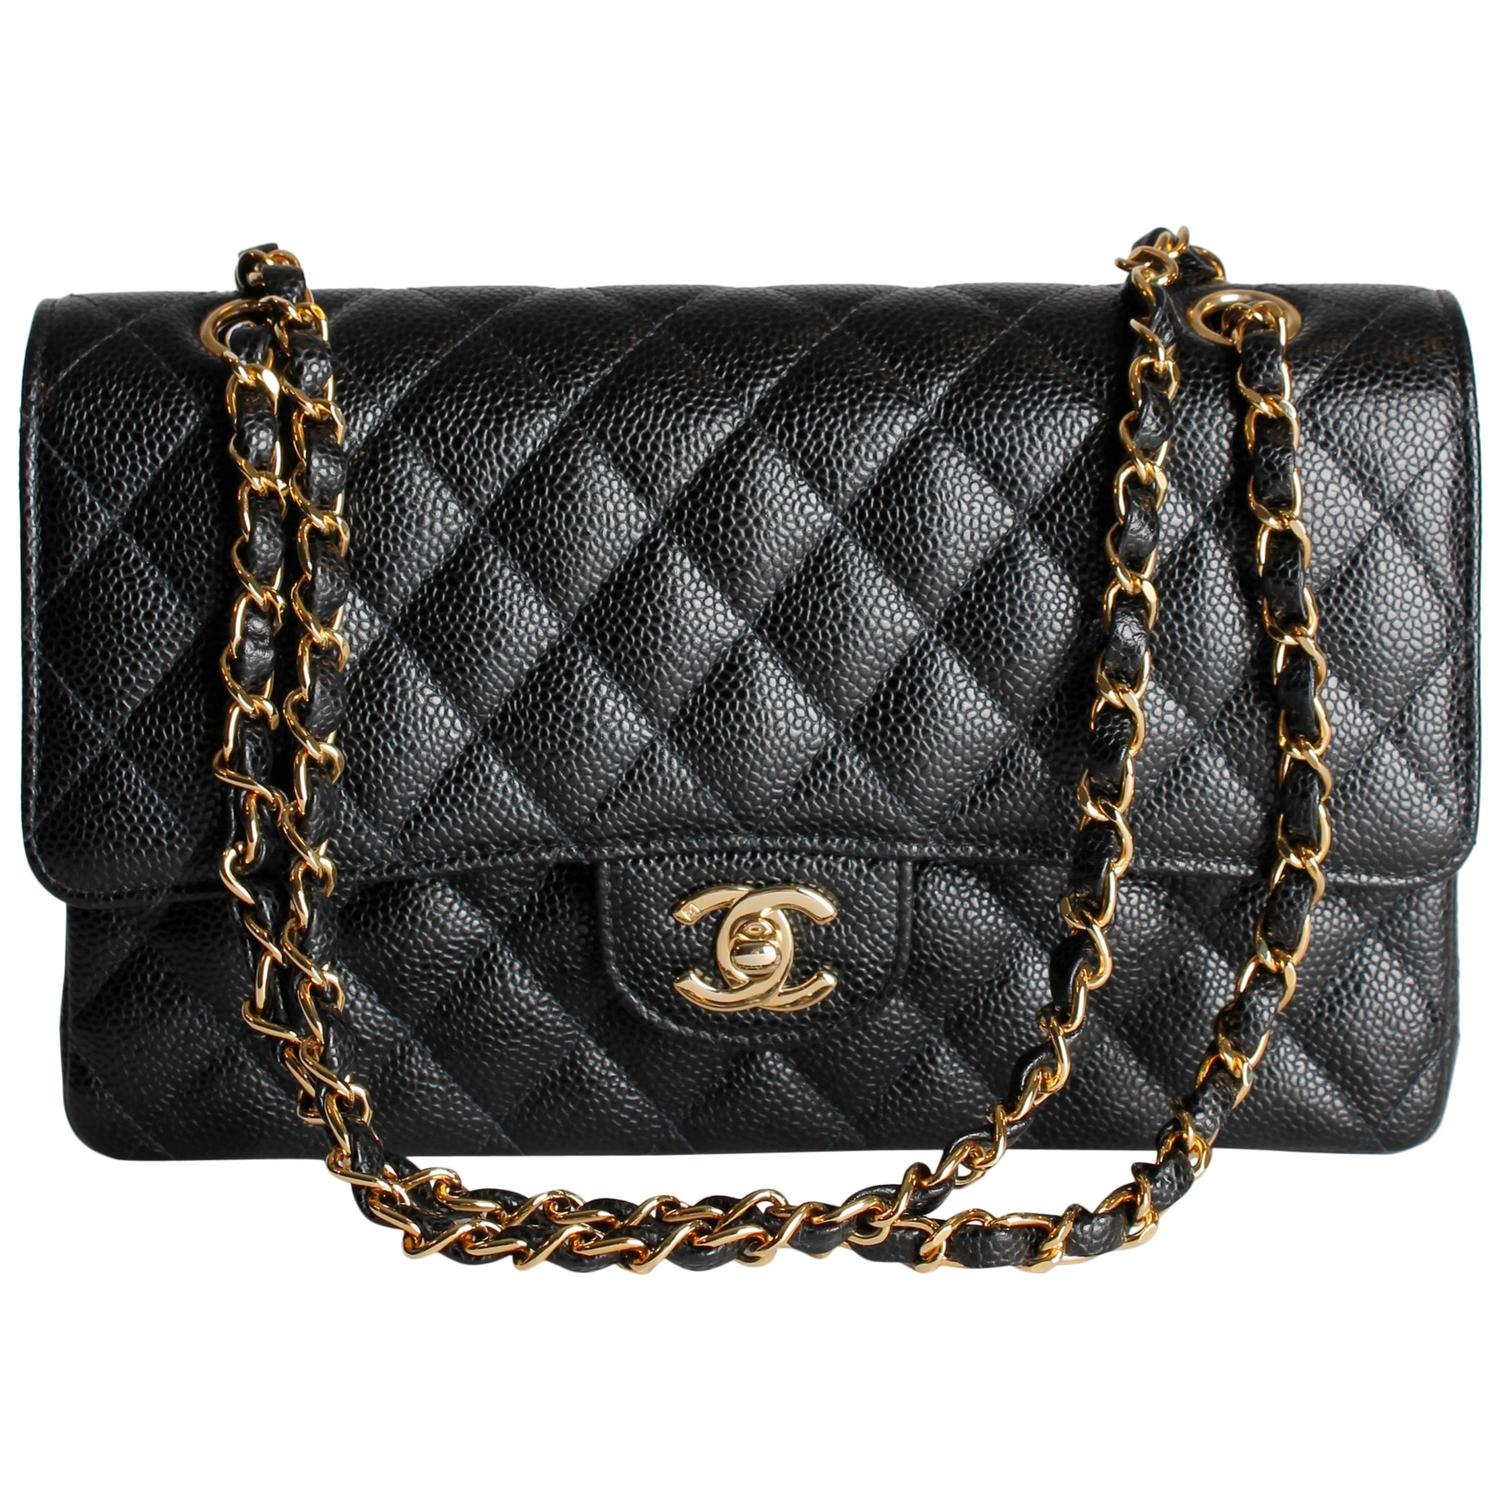 chanel caviar medium classic double flap bag black gold for sale at 1stdibs